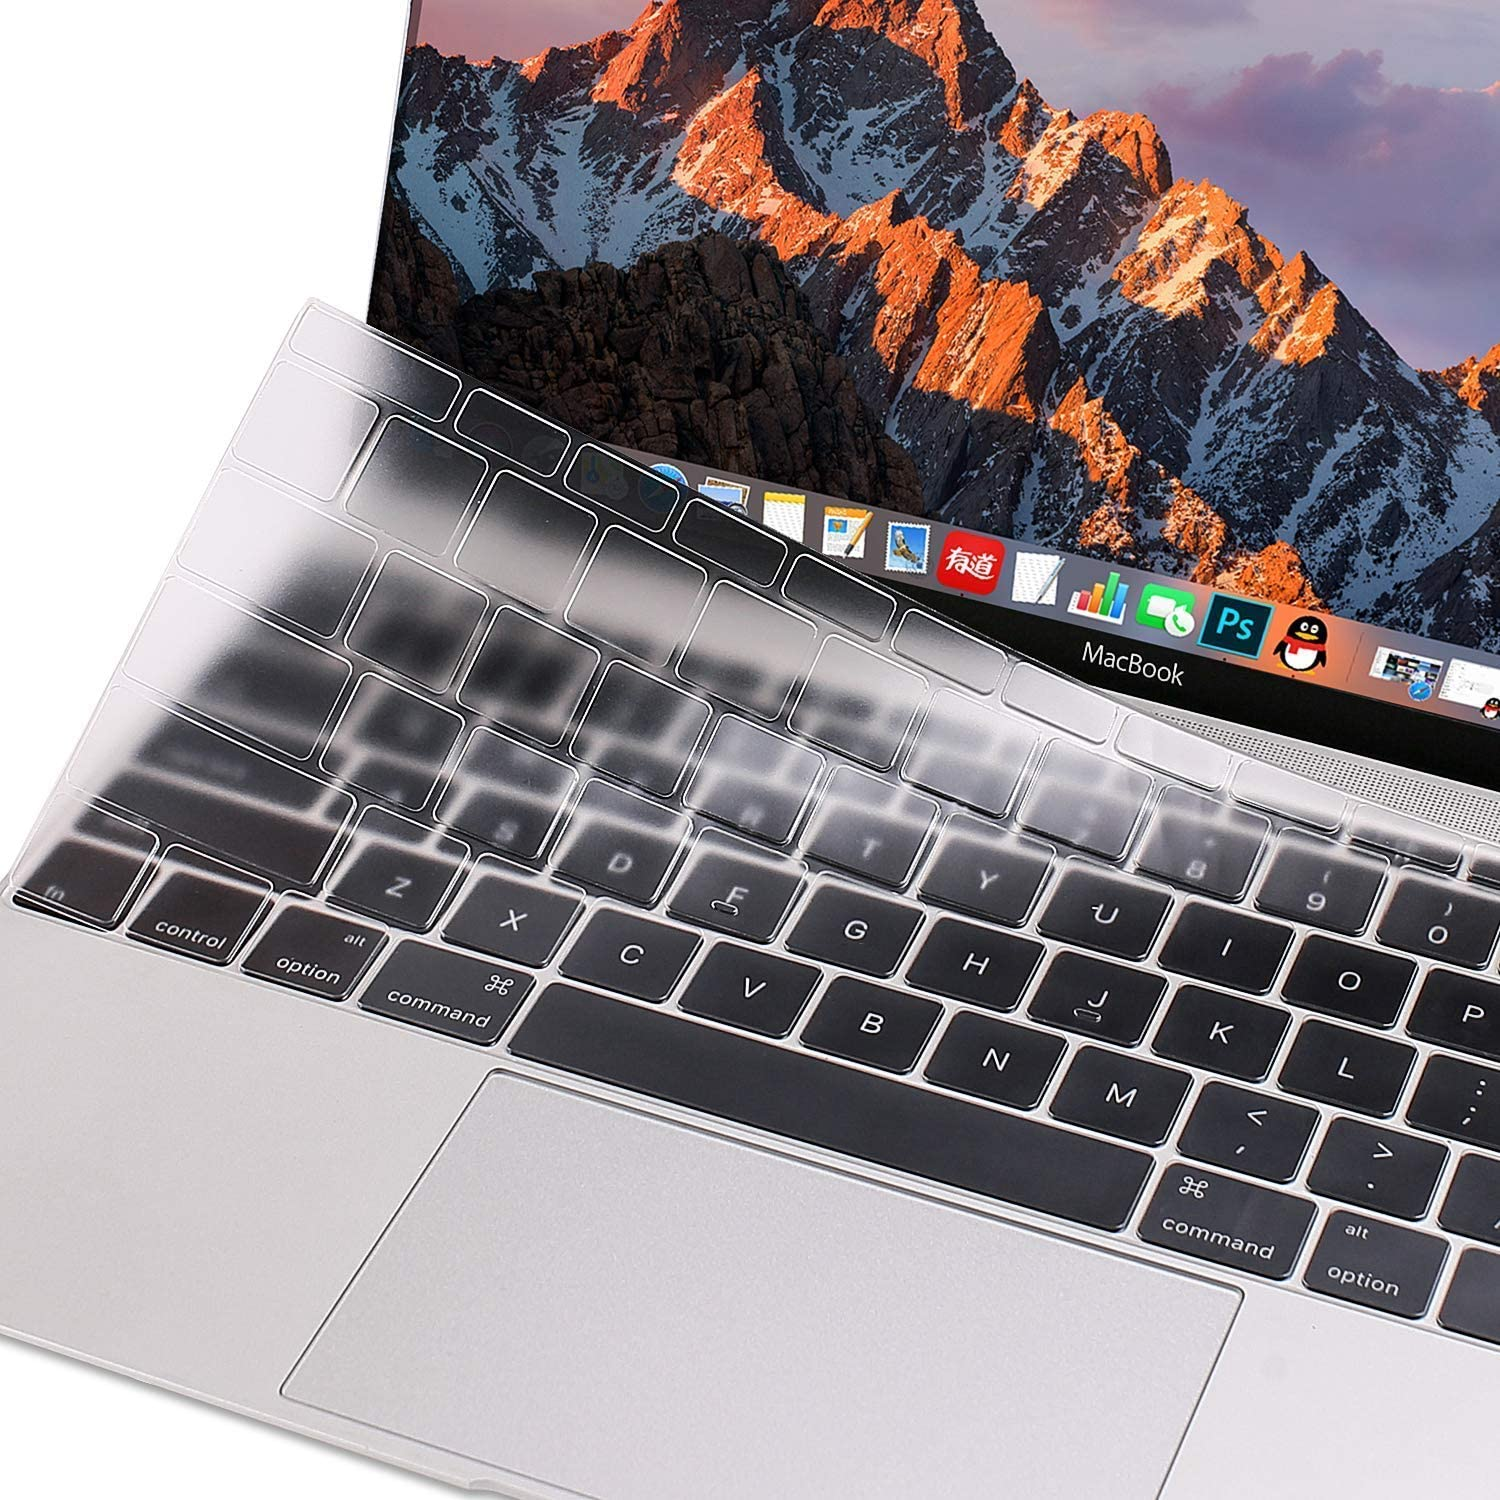 Screen//Trackpad Protector /& TPU Keyboard Cover /& Dust Plug /& Webcam Anti-Spy Cover MOSISO Full Protection Kit Compatible with MacBook Pro 13 inch Without Touch Bar A1708 2017 2016 Release